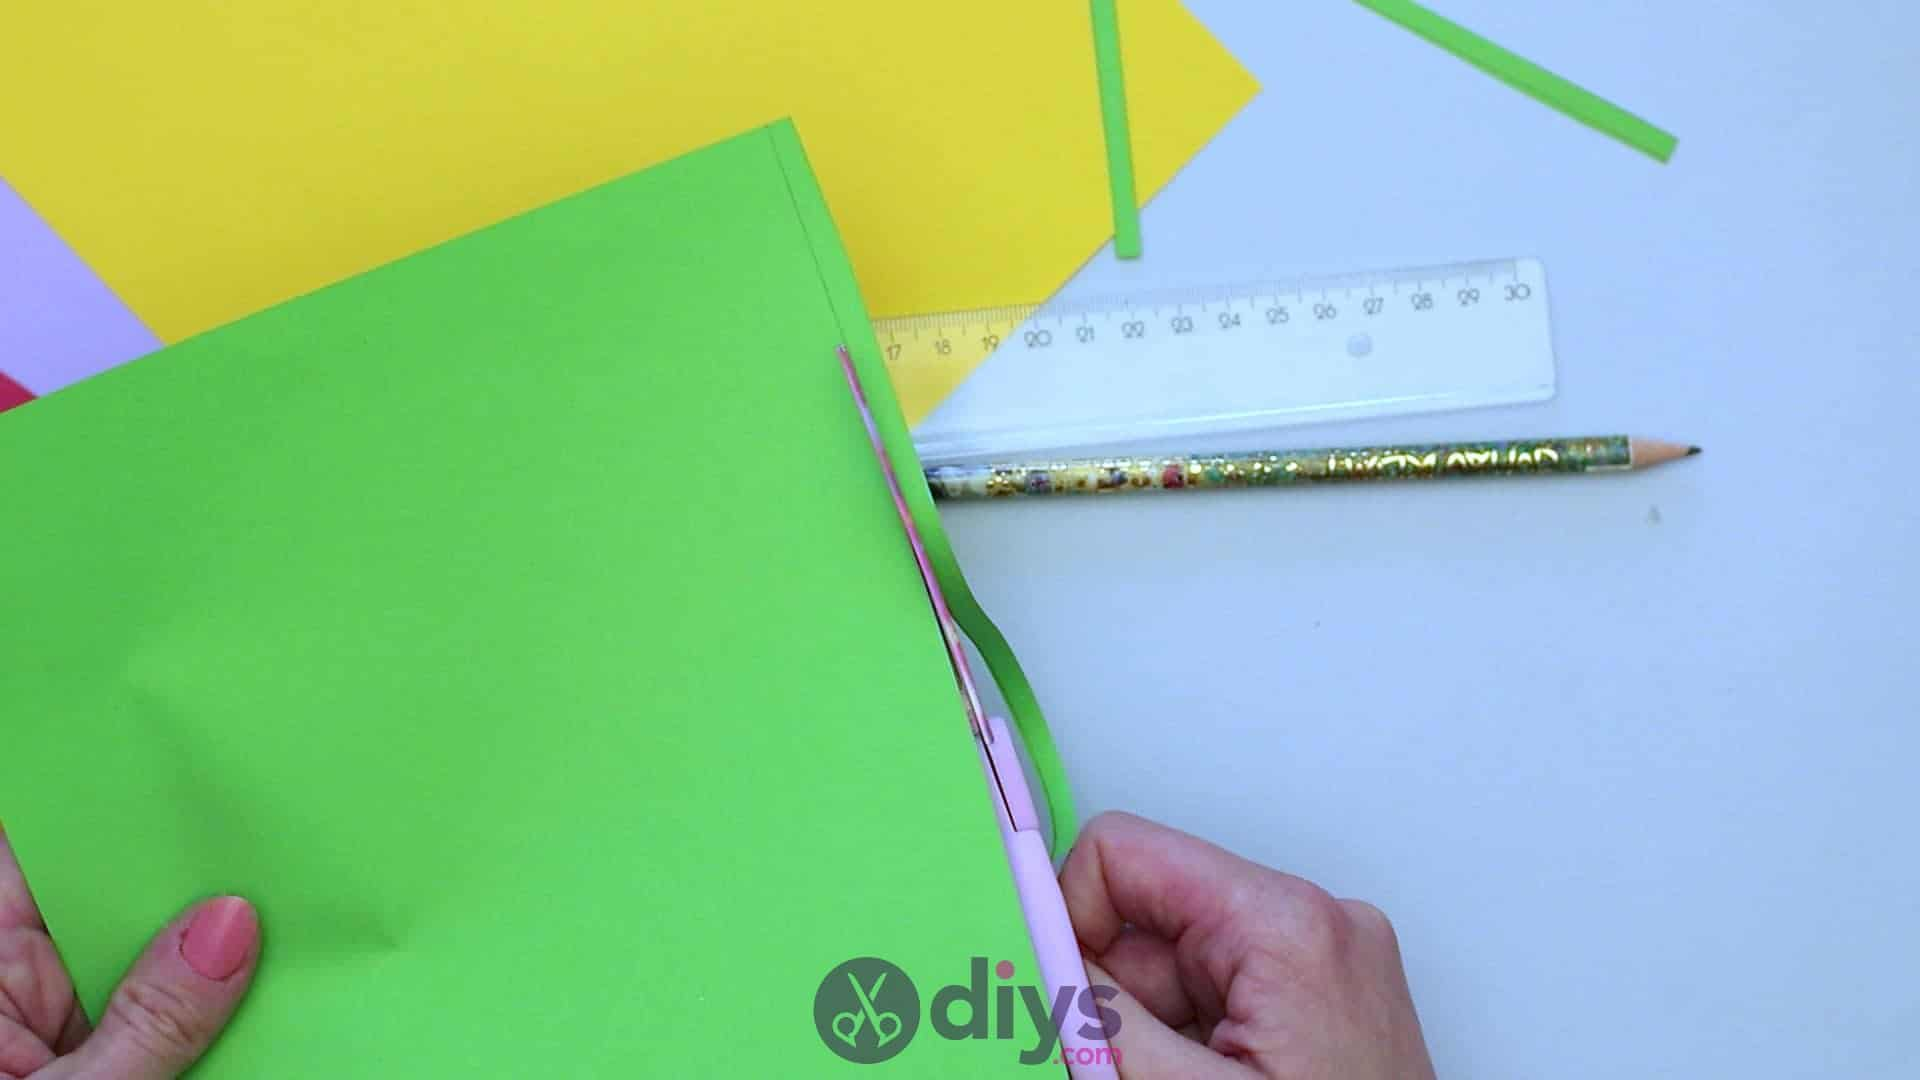 Diy paper spring tree step 2d